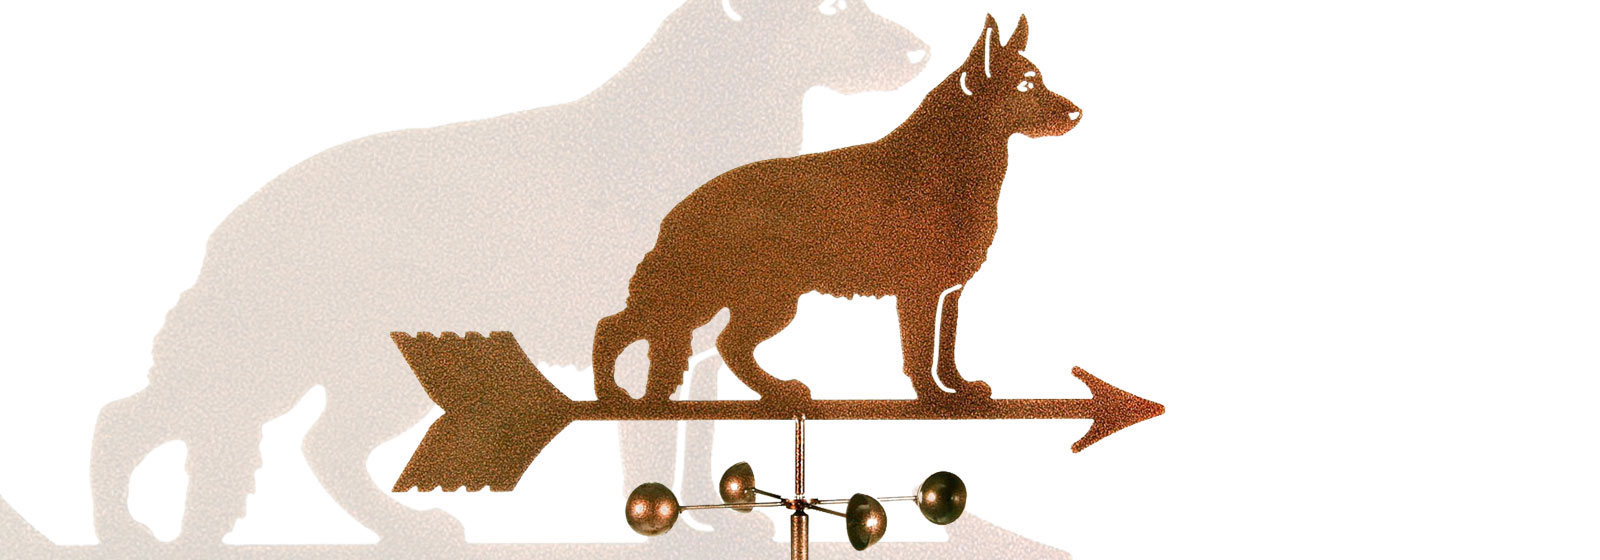 Cats and Dogs Weathervanes